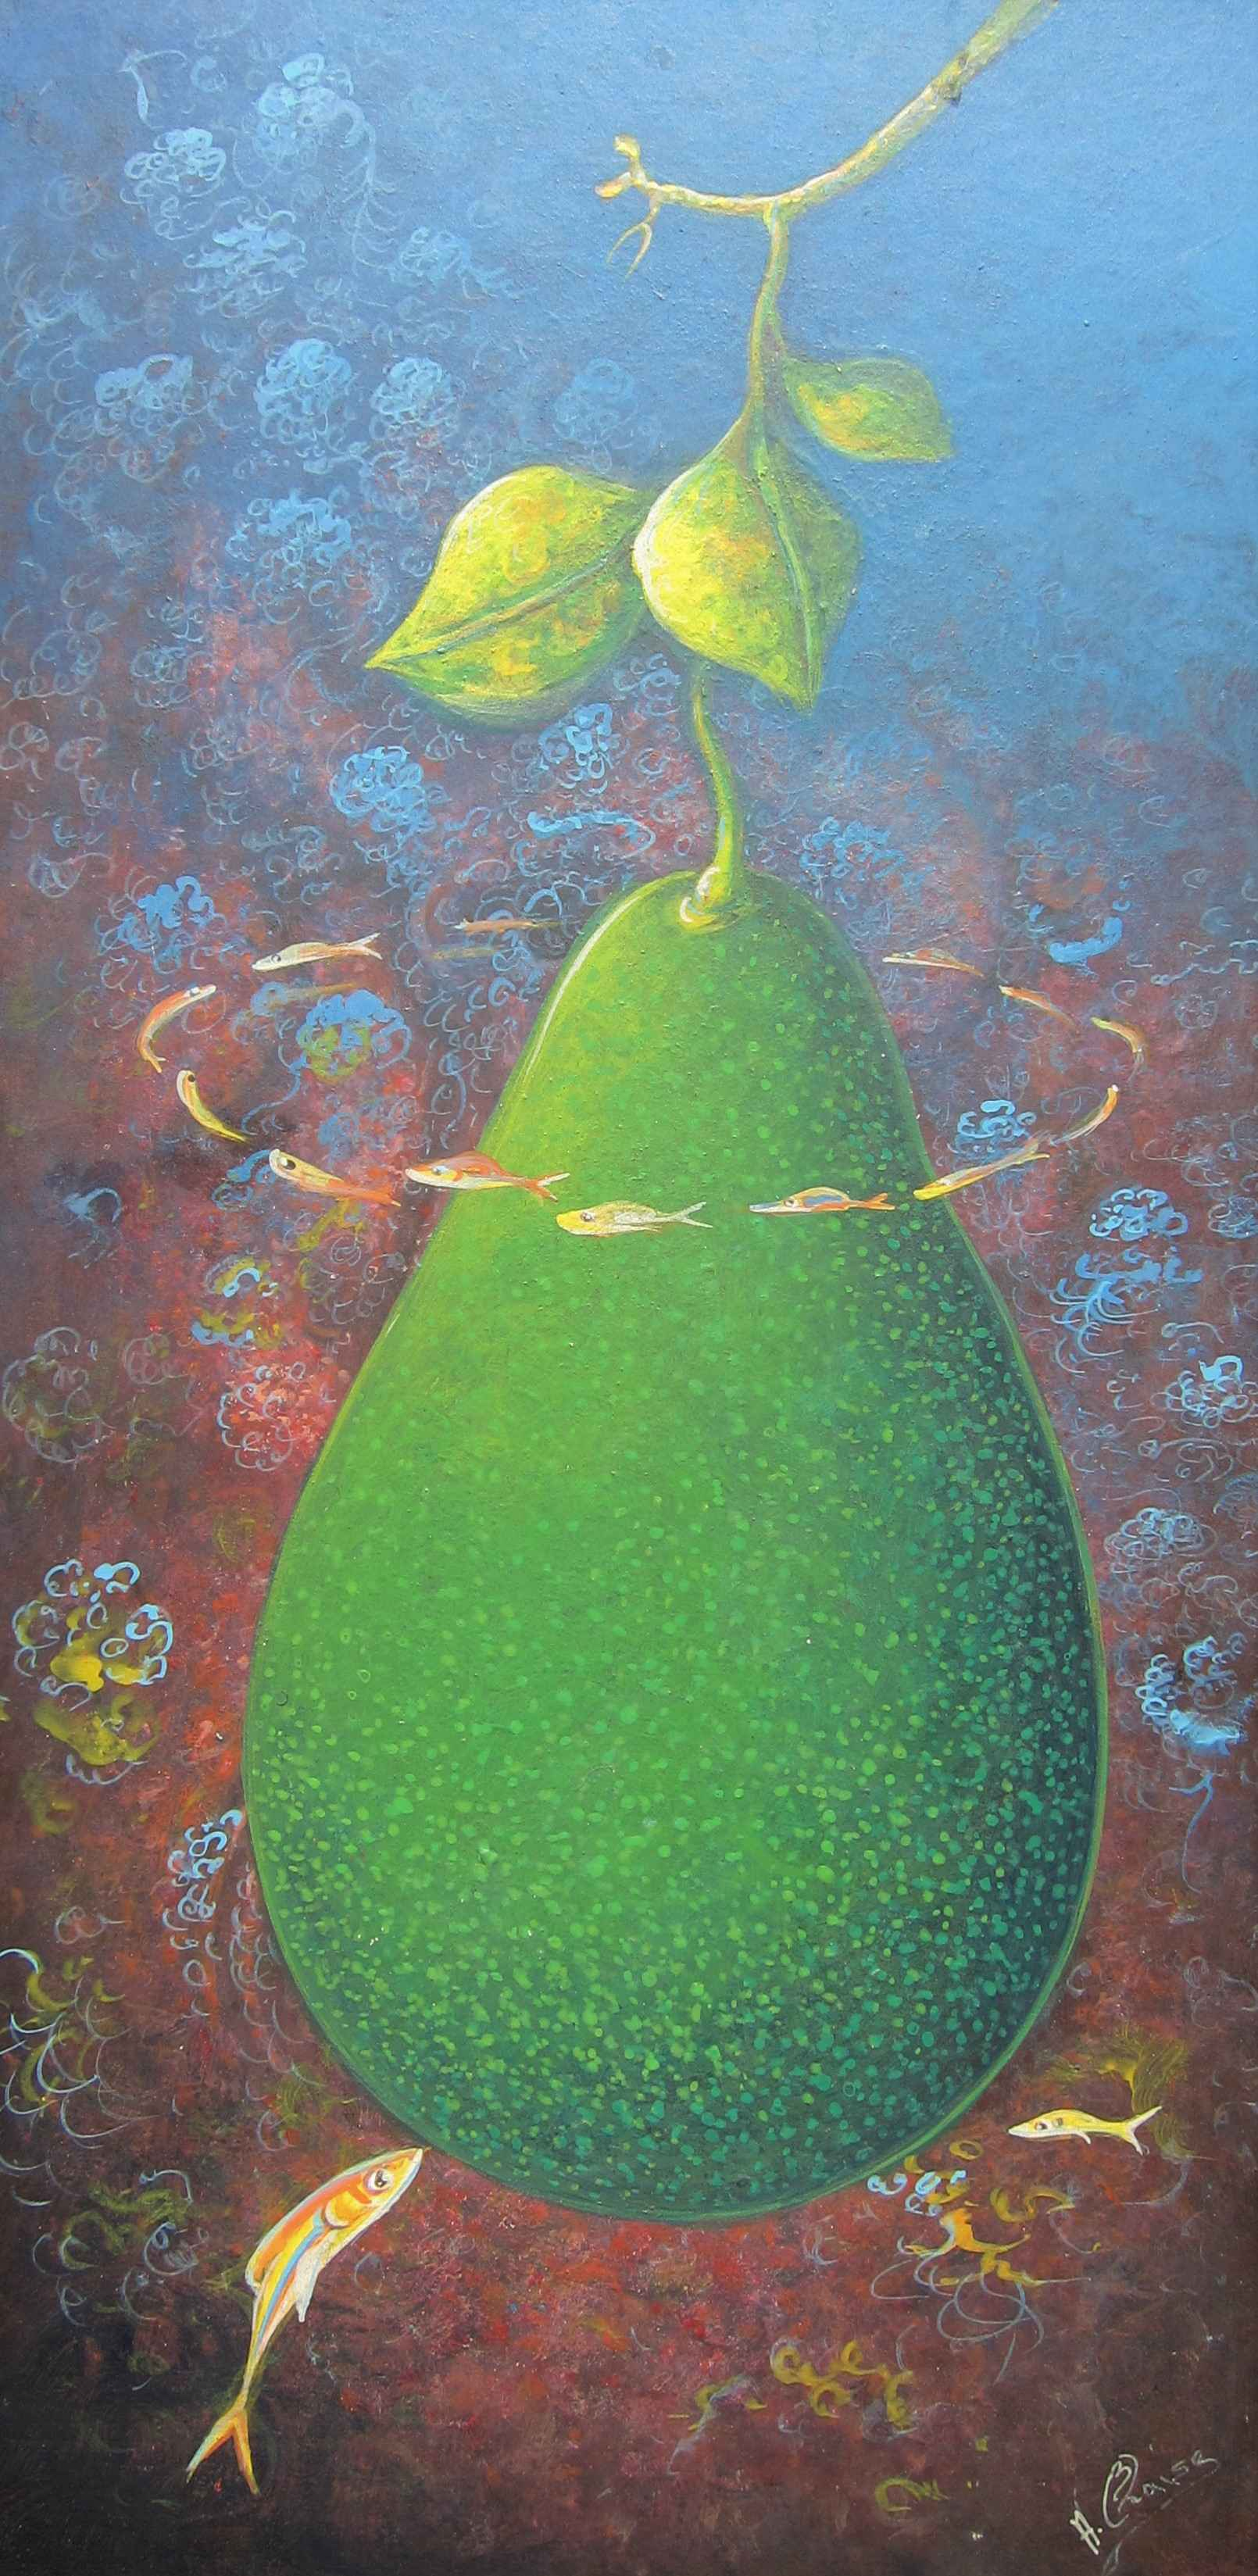 Avocado by  Andre BLAISE - Masterpiece Online